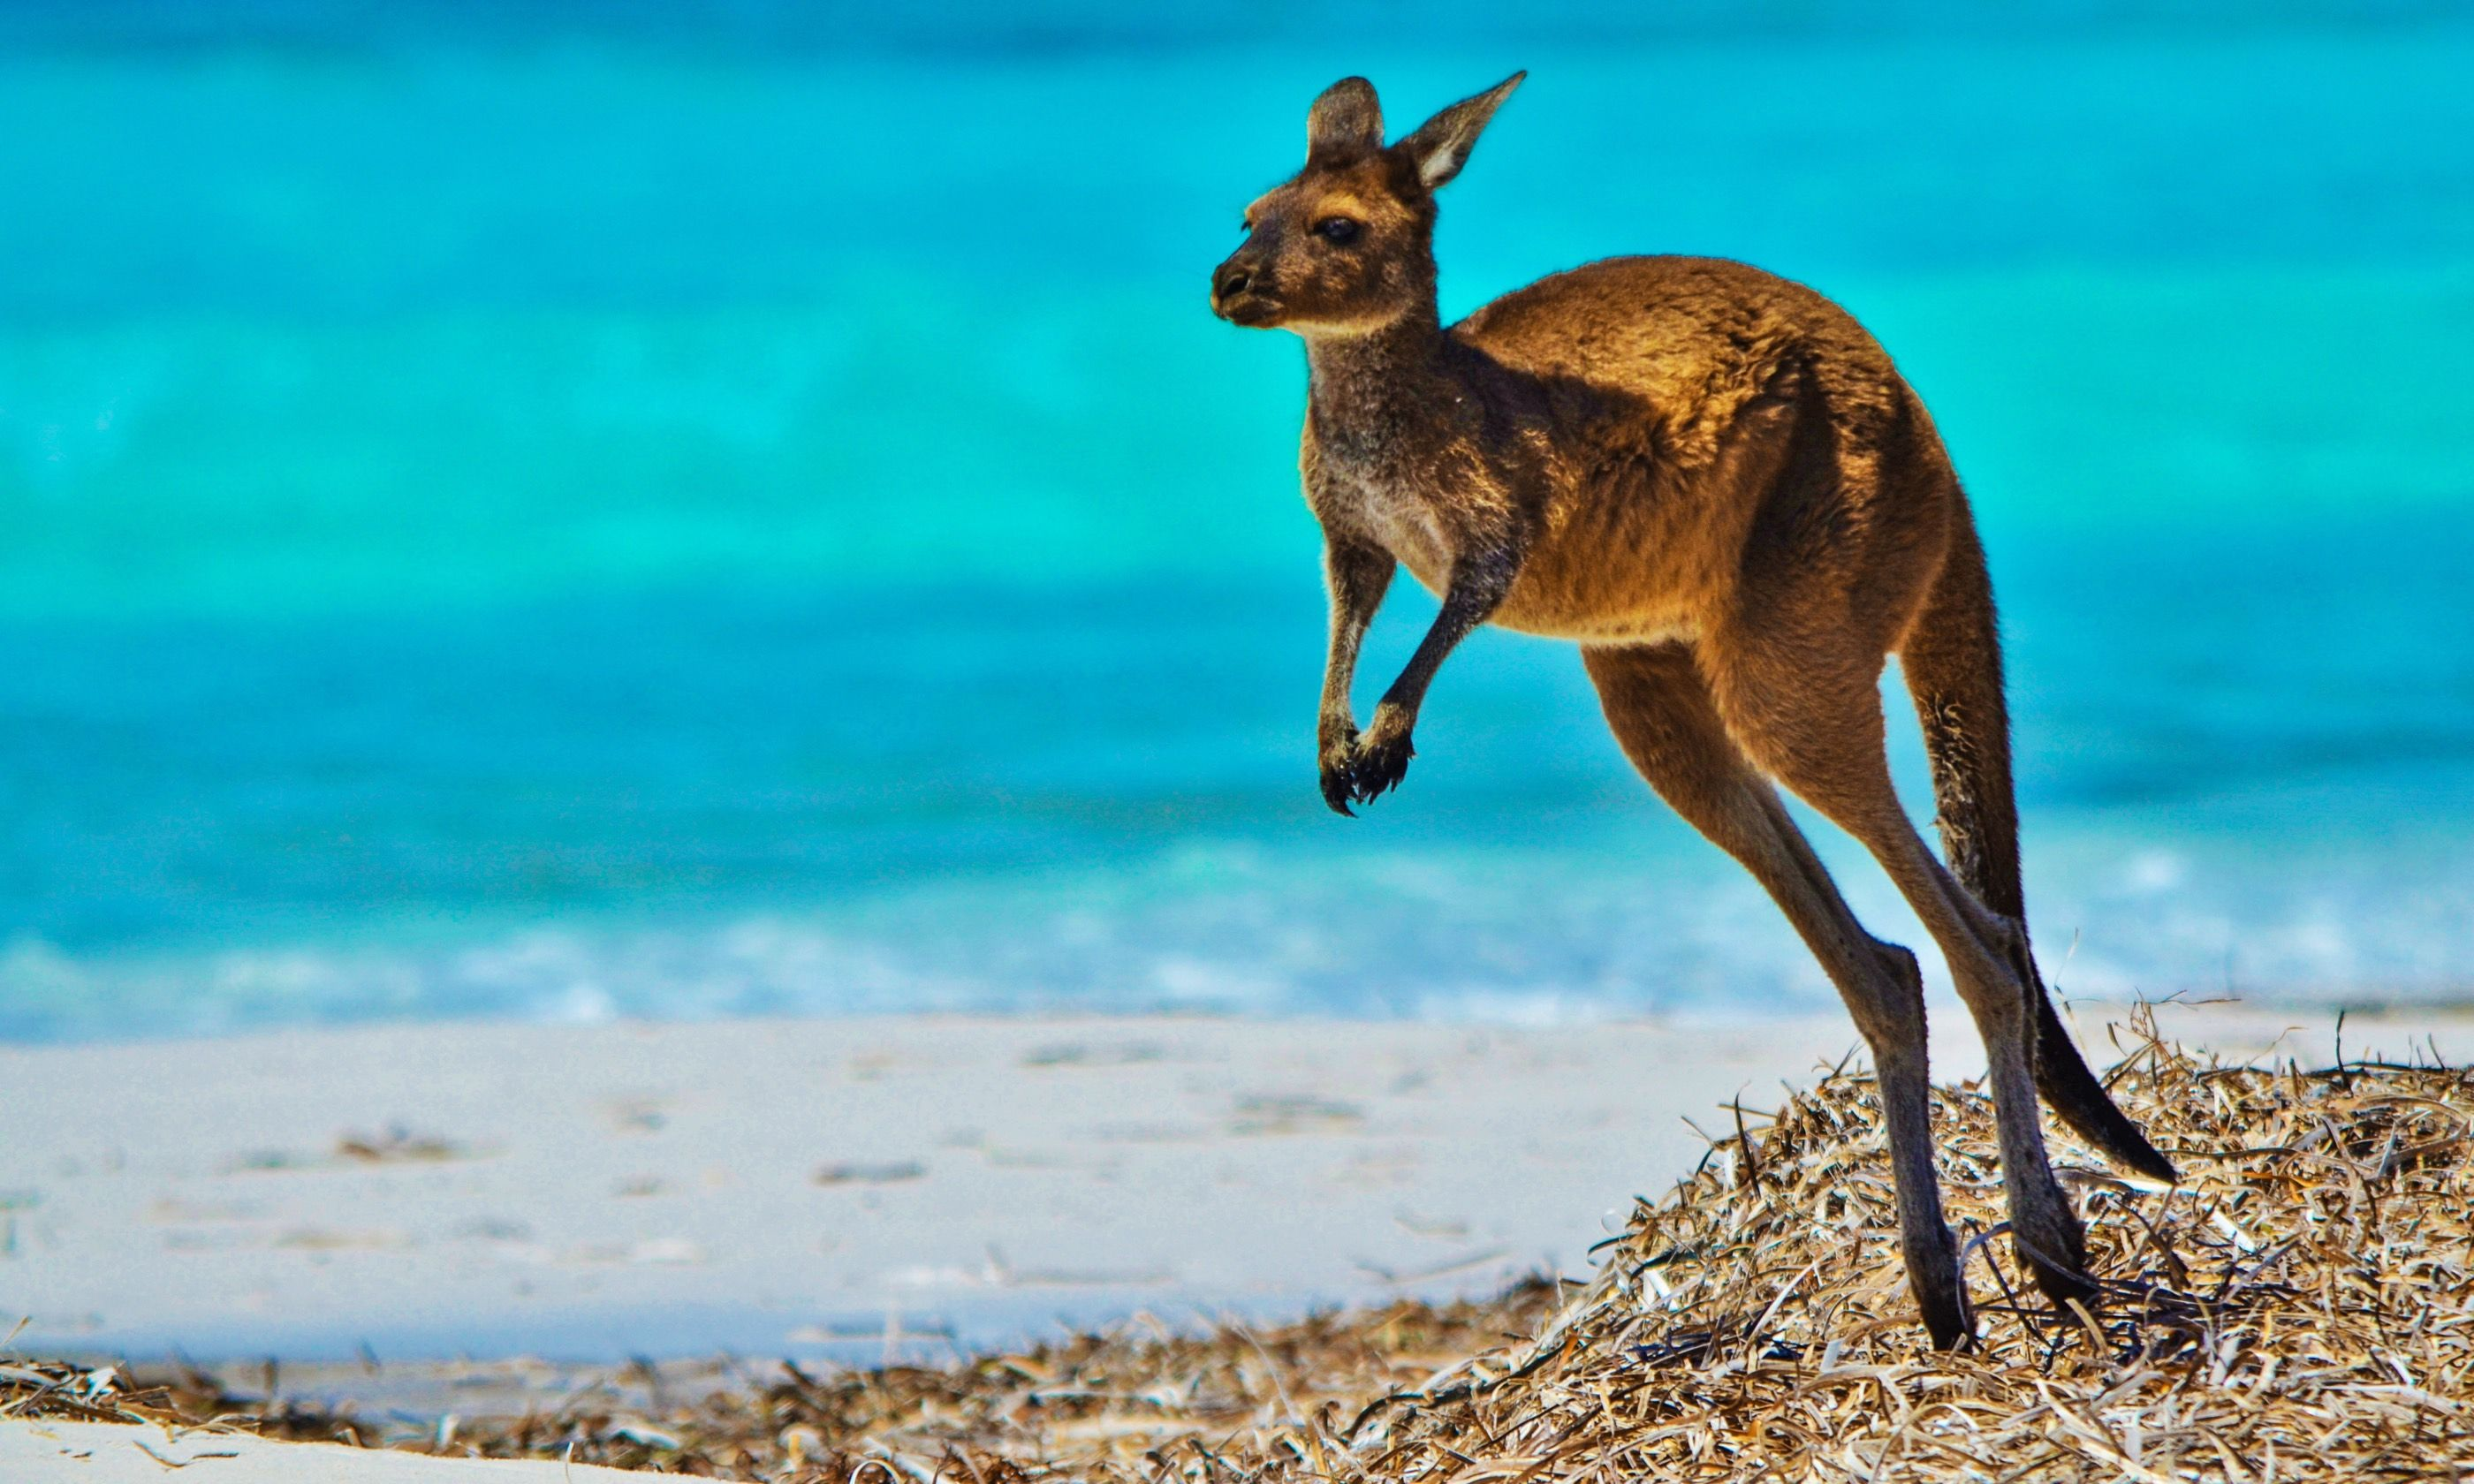 Kangaroo at Lucky Bay (Dreamstime)